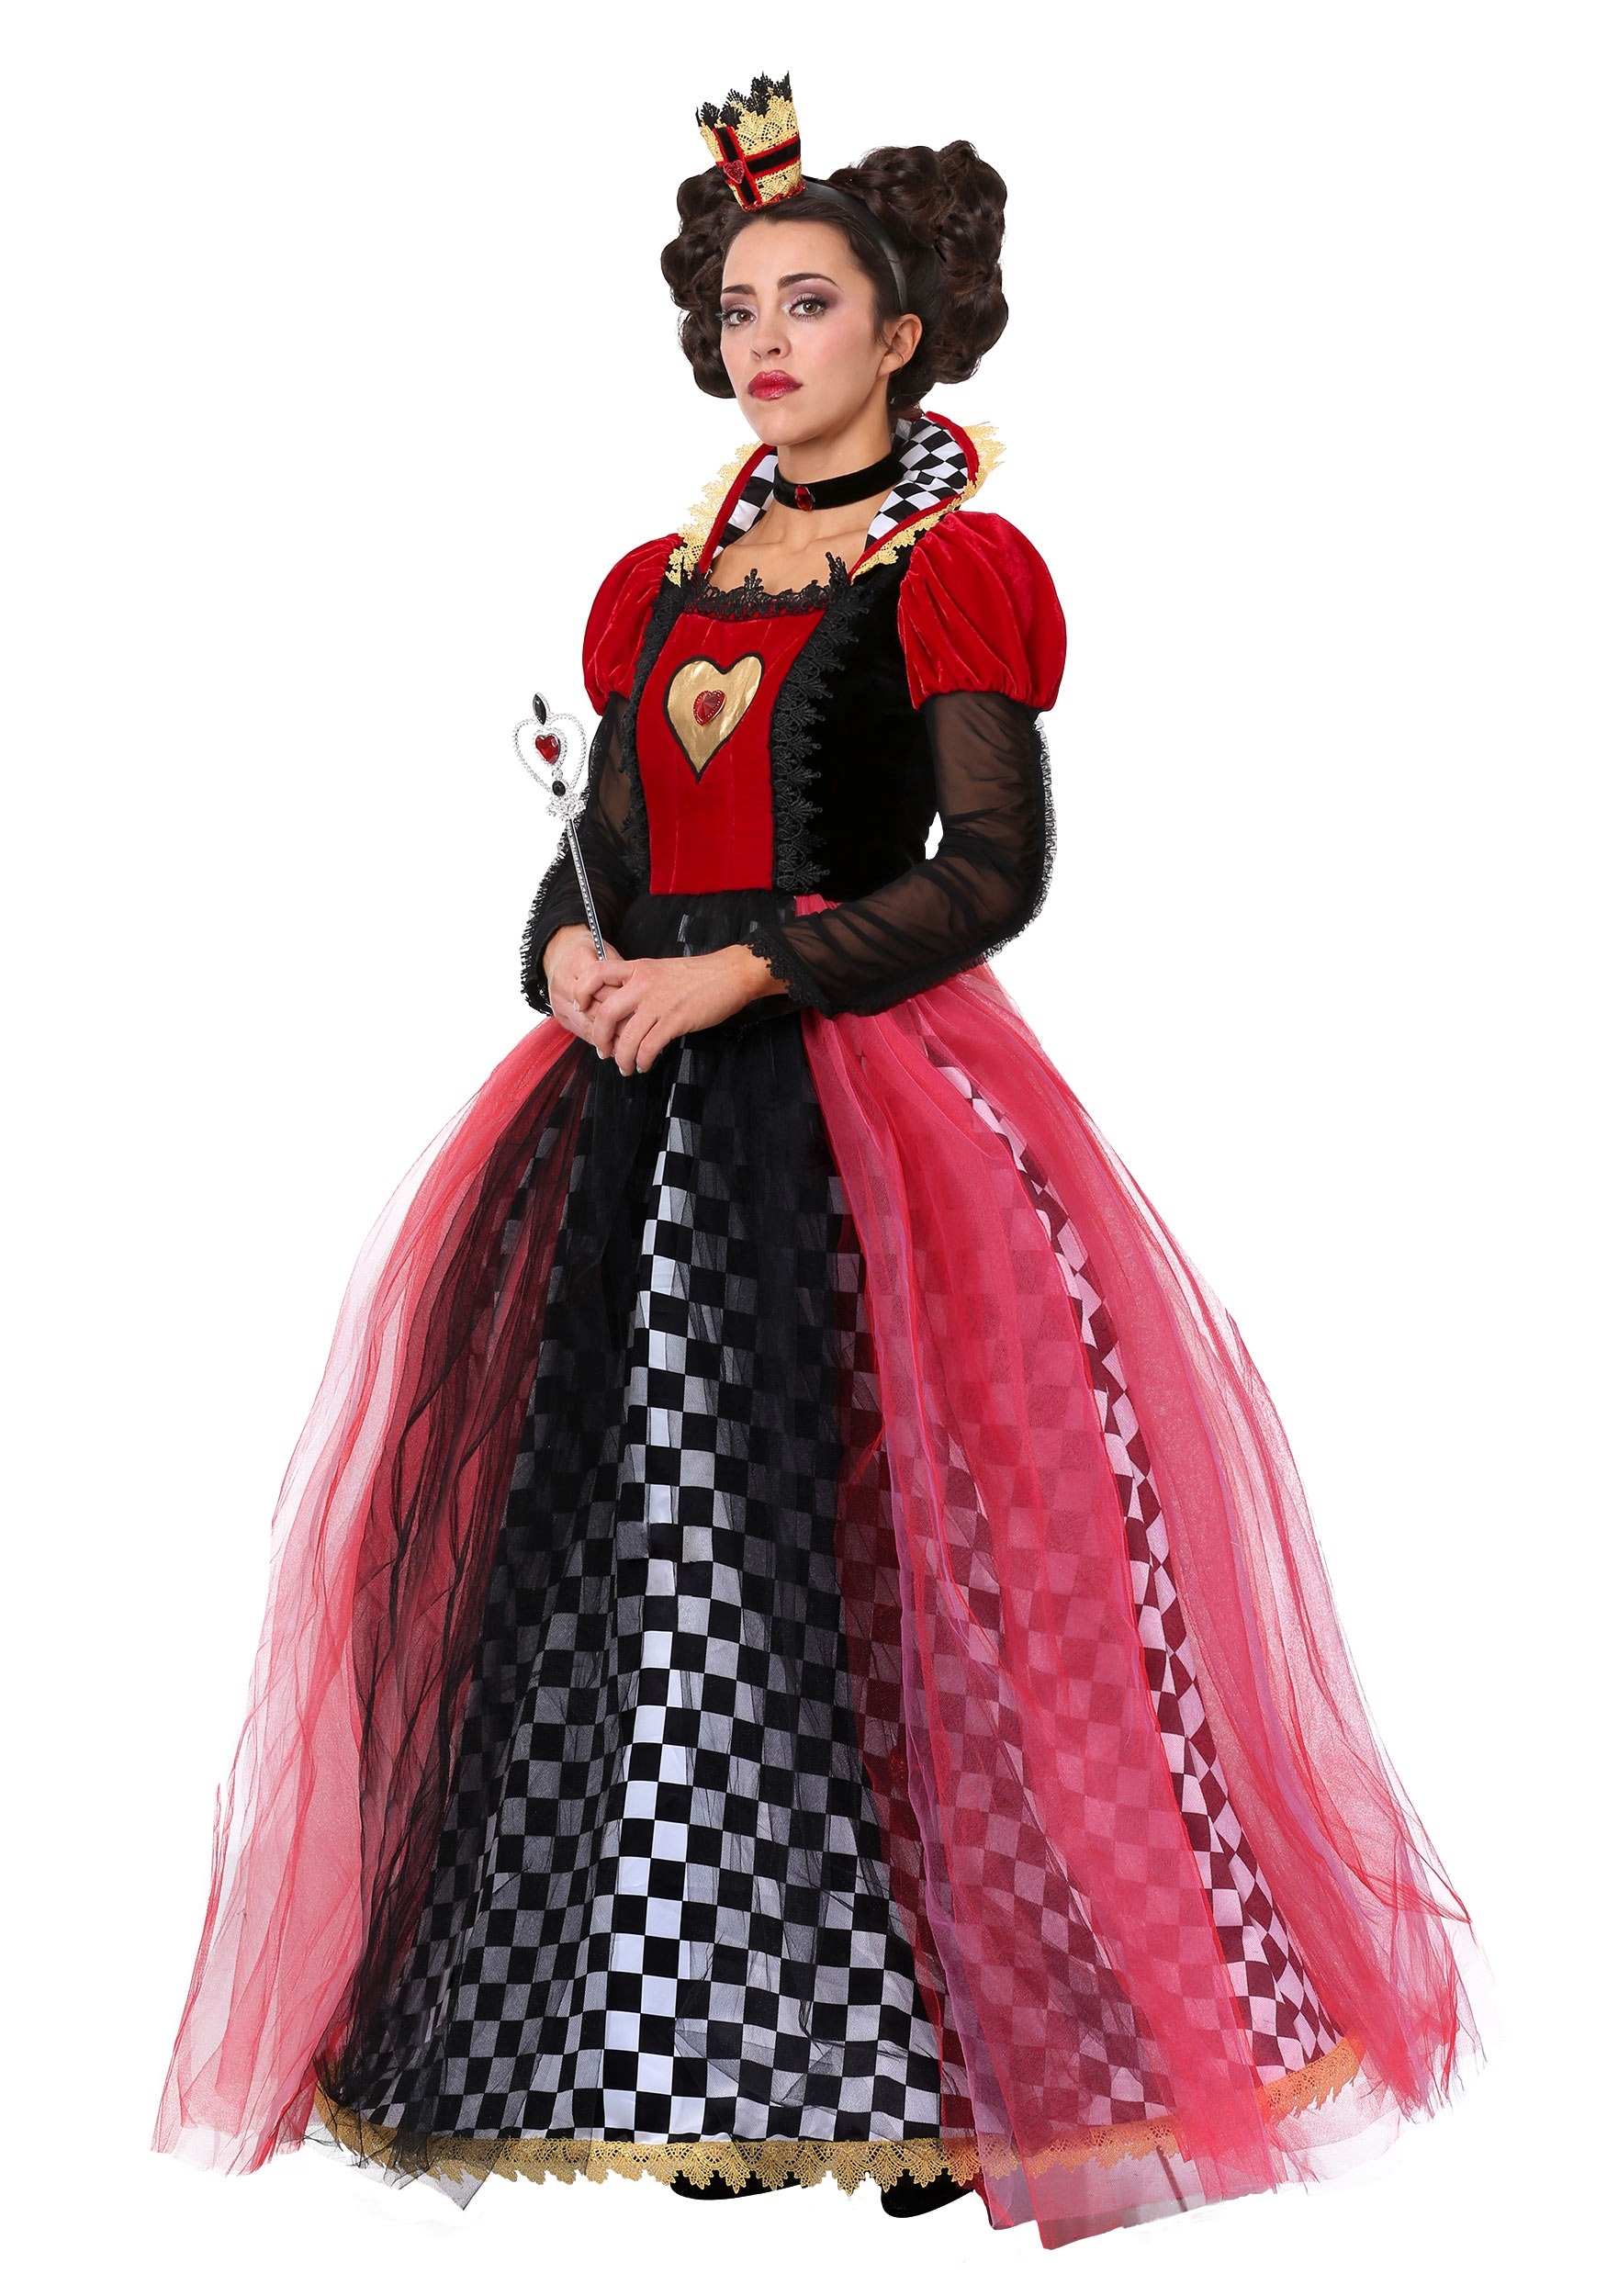 Women's Ravishing Alice Through the Looking Glass Red Queen Costume - DeluxeAdultCostumes.com